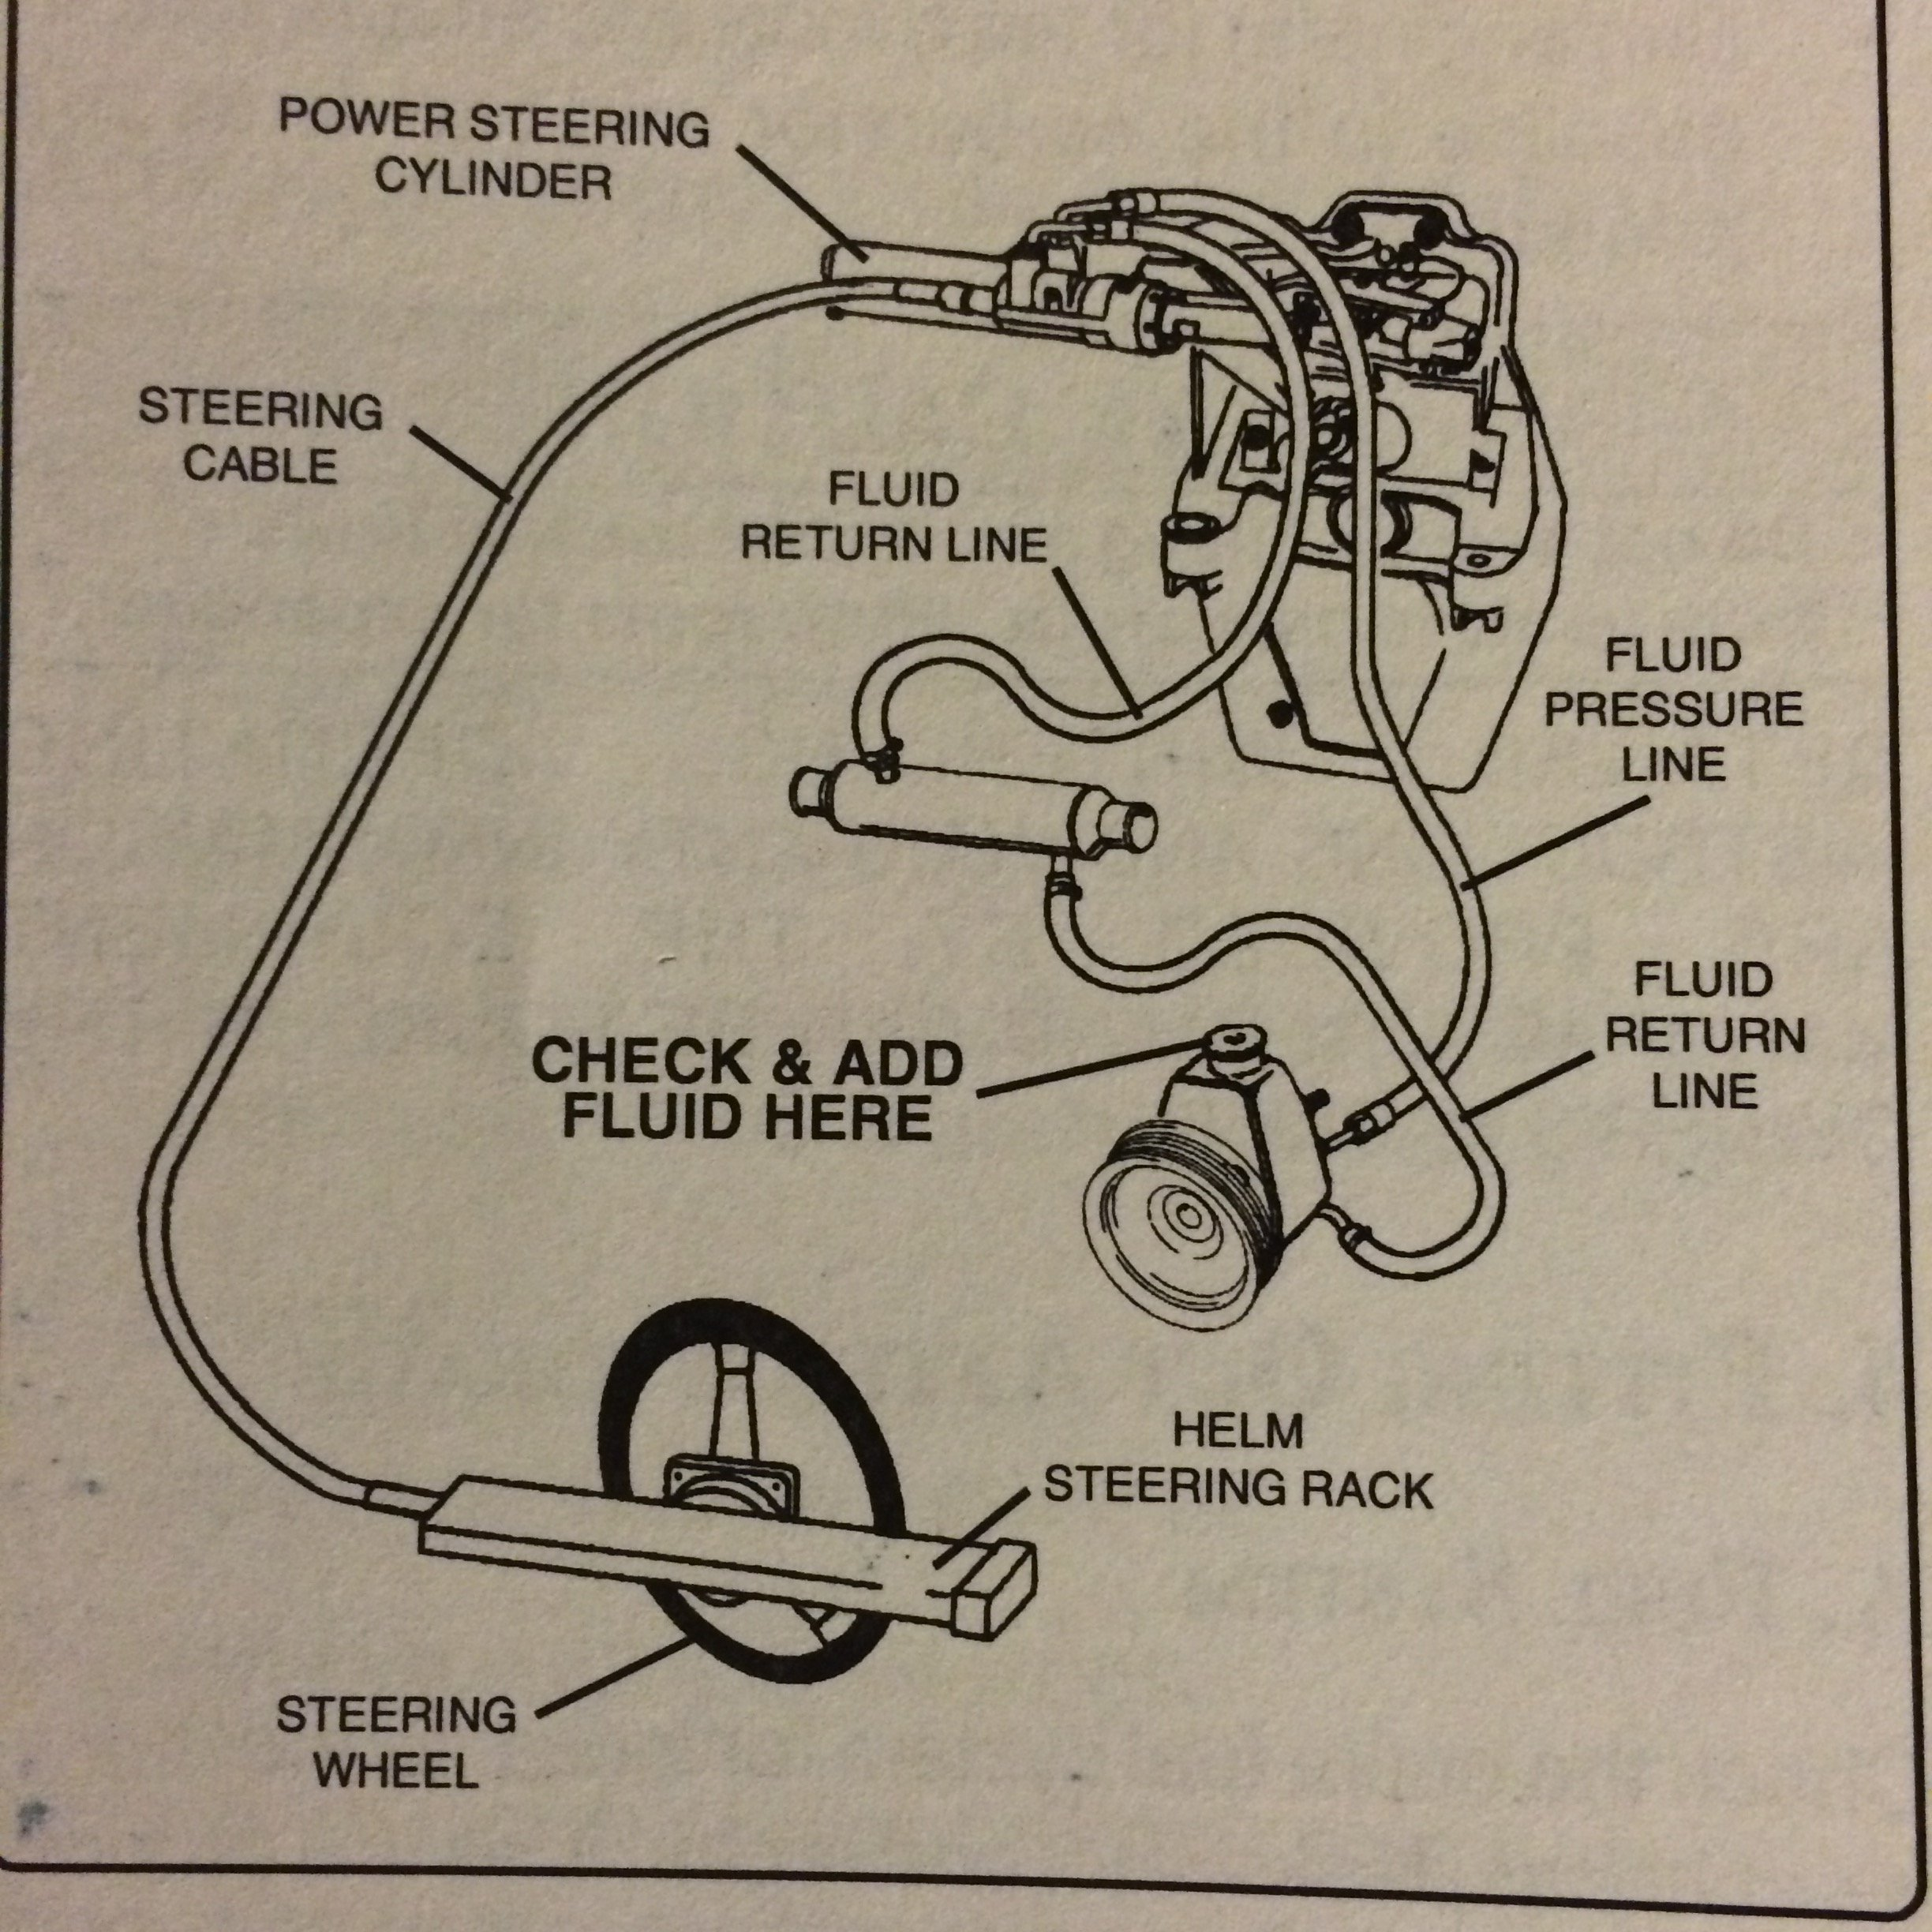 verado power steering wiring diagram trusted wiring diagrams rh kroud co